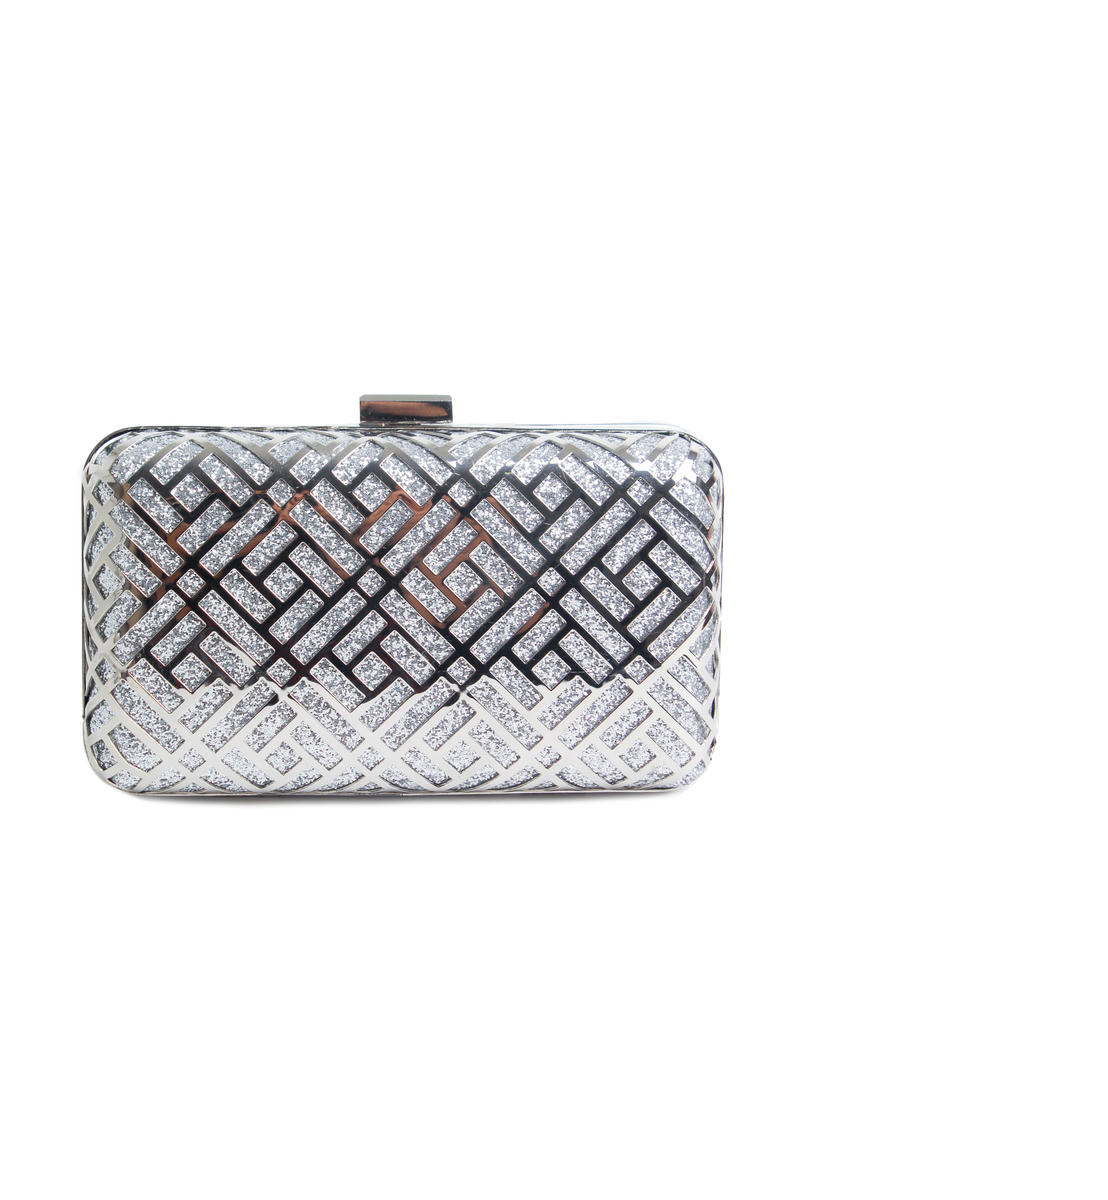 Metallic Cutout Hard Case Clutch